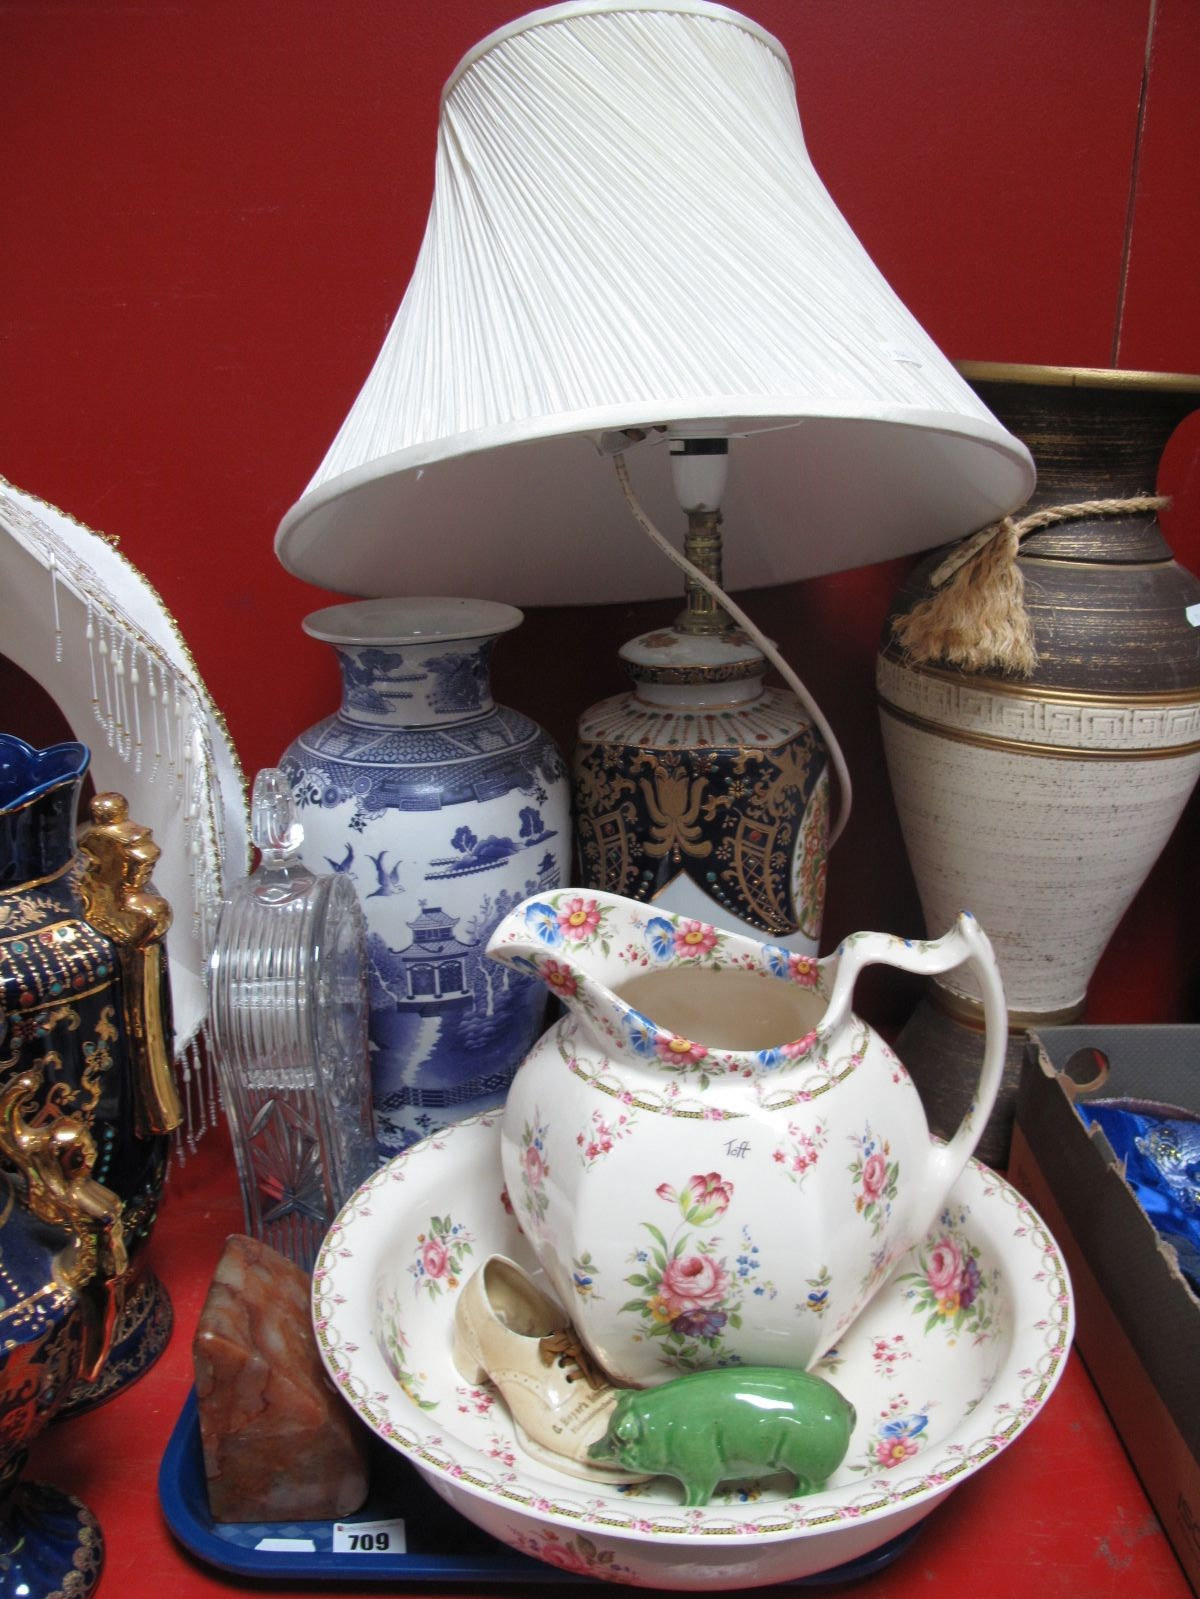 Lot 709 - A Modern Pottery Toilet Jug and Bowl, Willow pattern ovoid vase, lead crystal mantel clock,